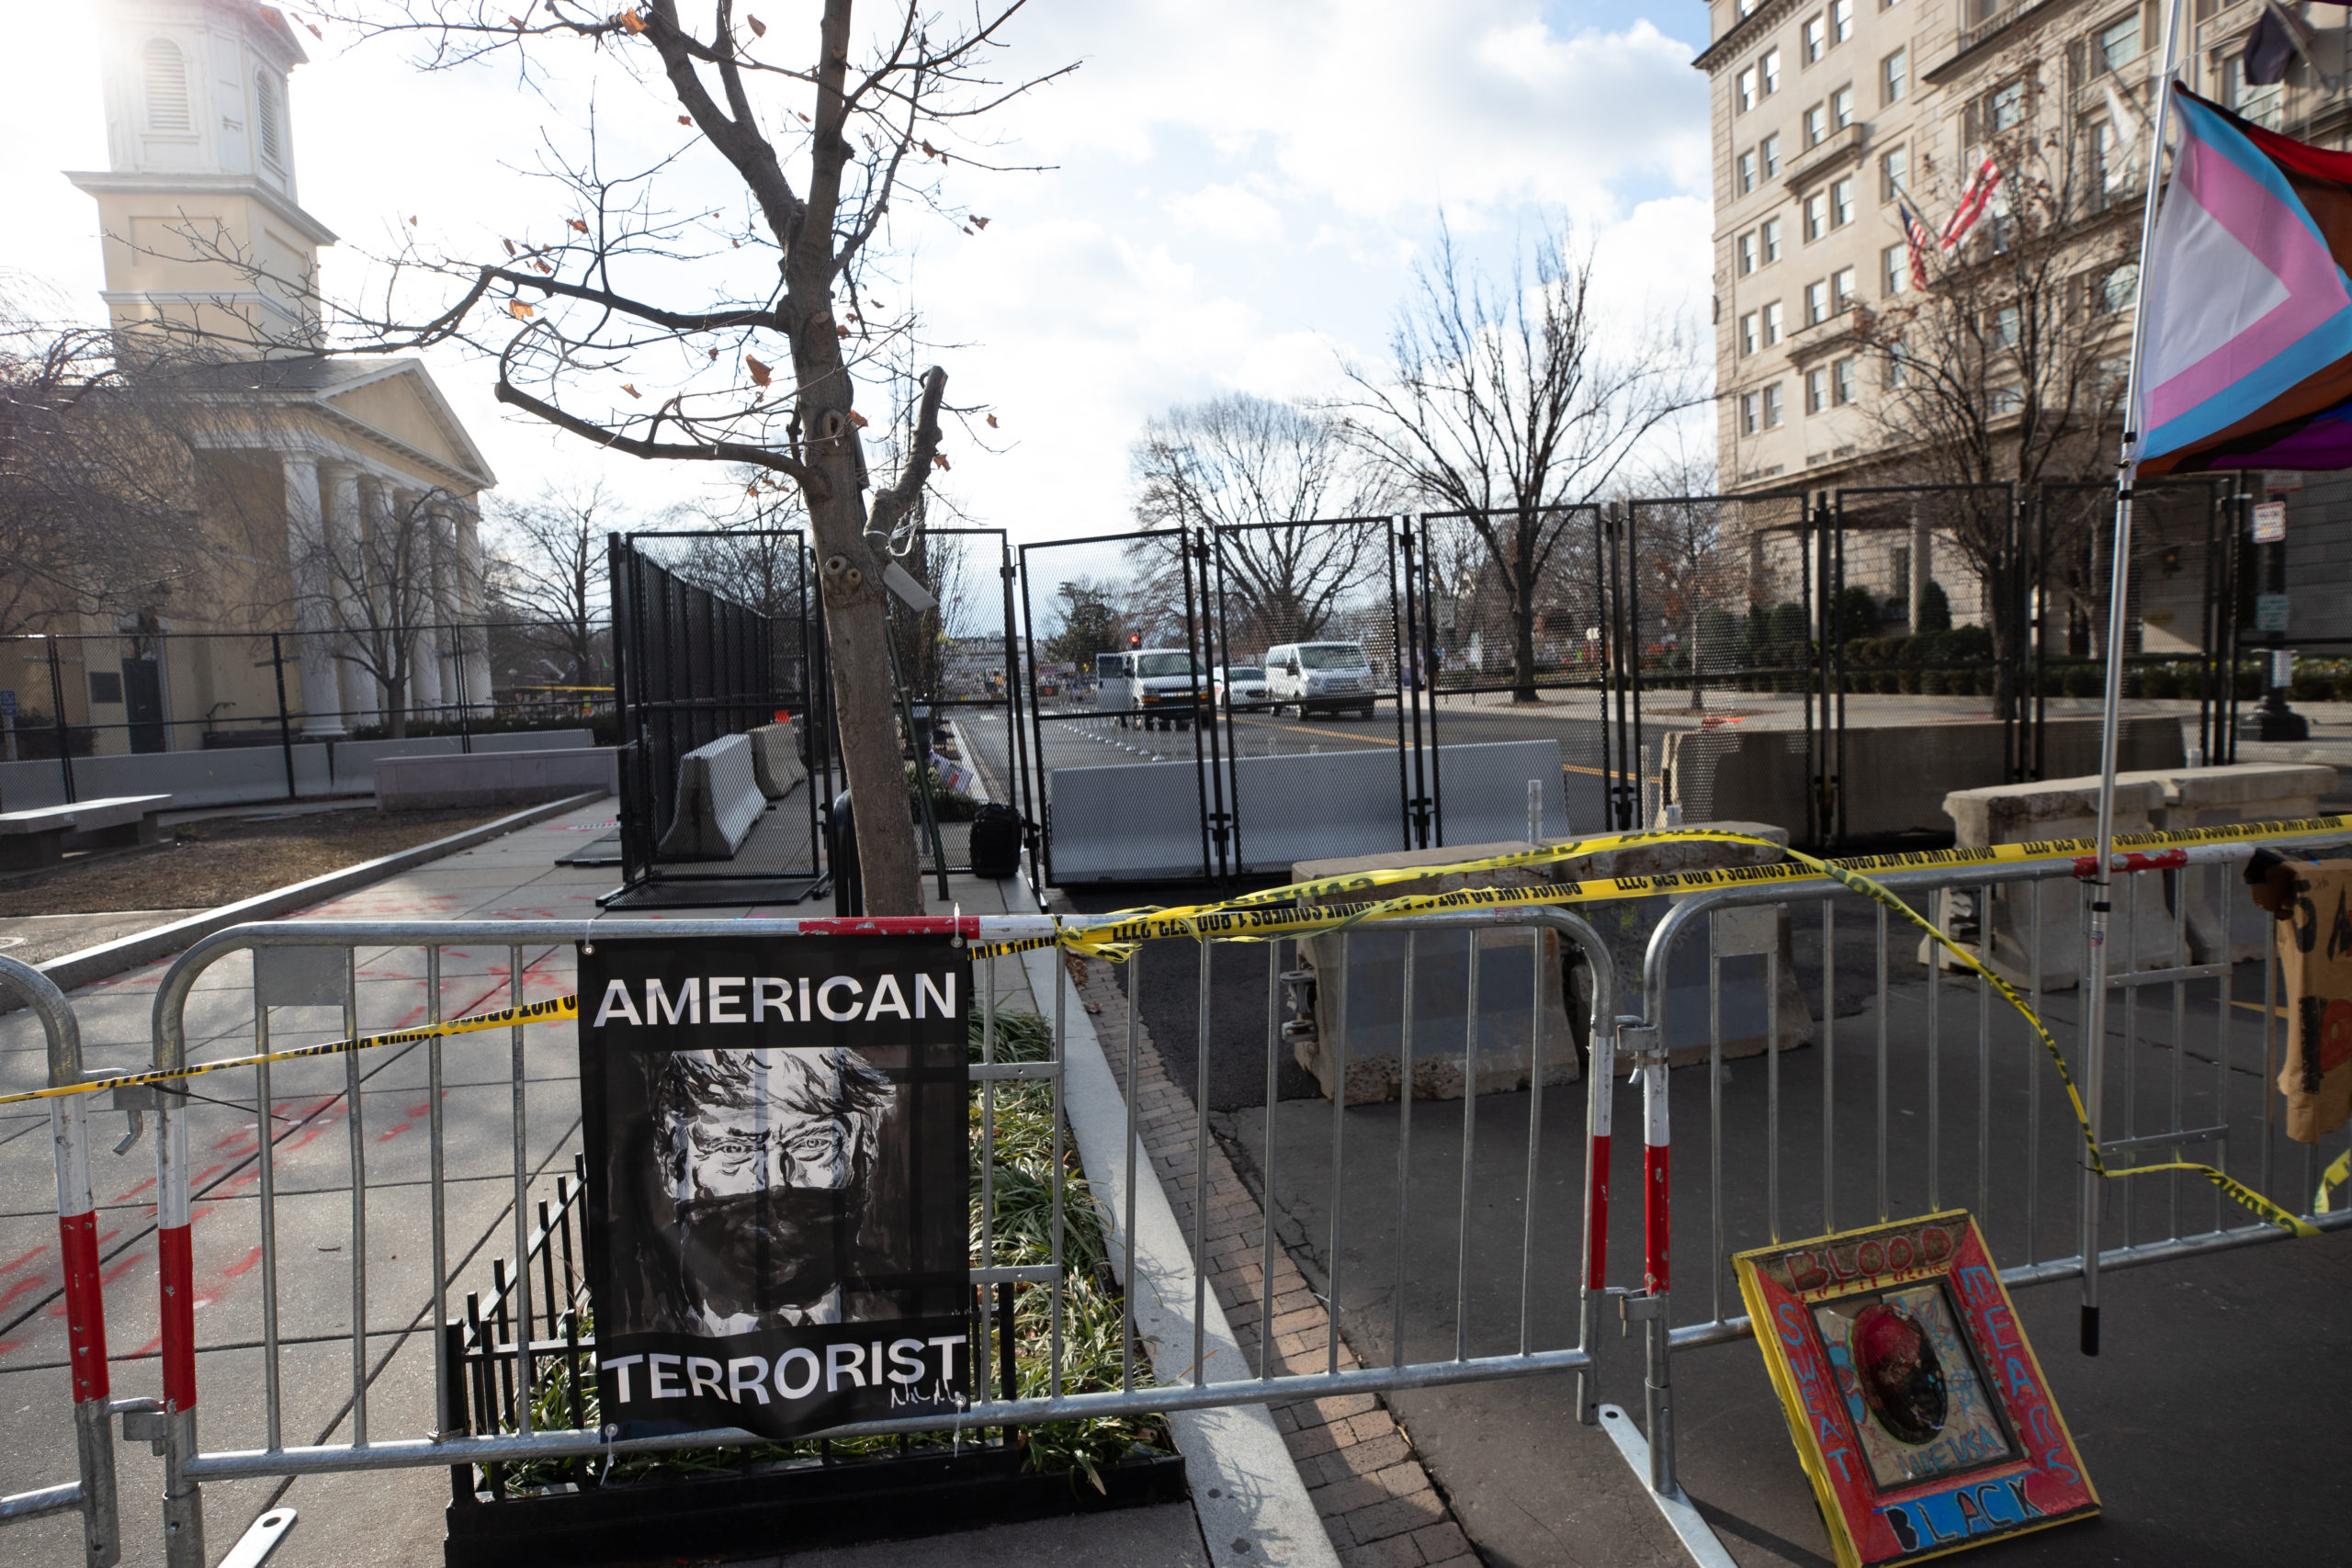 Several barriers were set up blocking off Lafayette Park from Black Lives Matter Plaza in Washington, D.C. on Jan. 20, 2021. (Kaylee Greenlee - Daily Caller News Foundation)